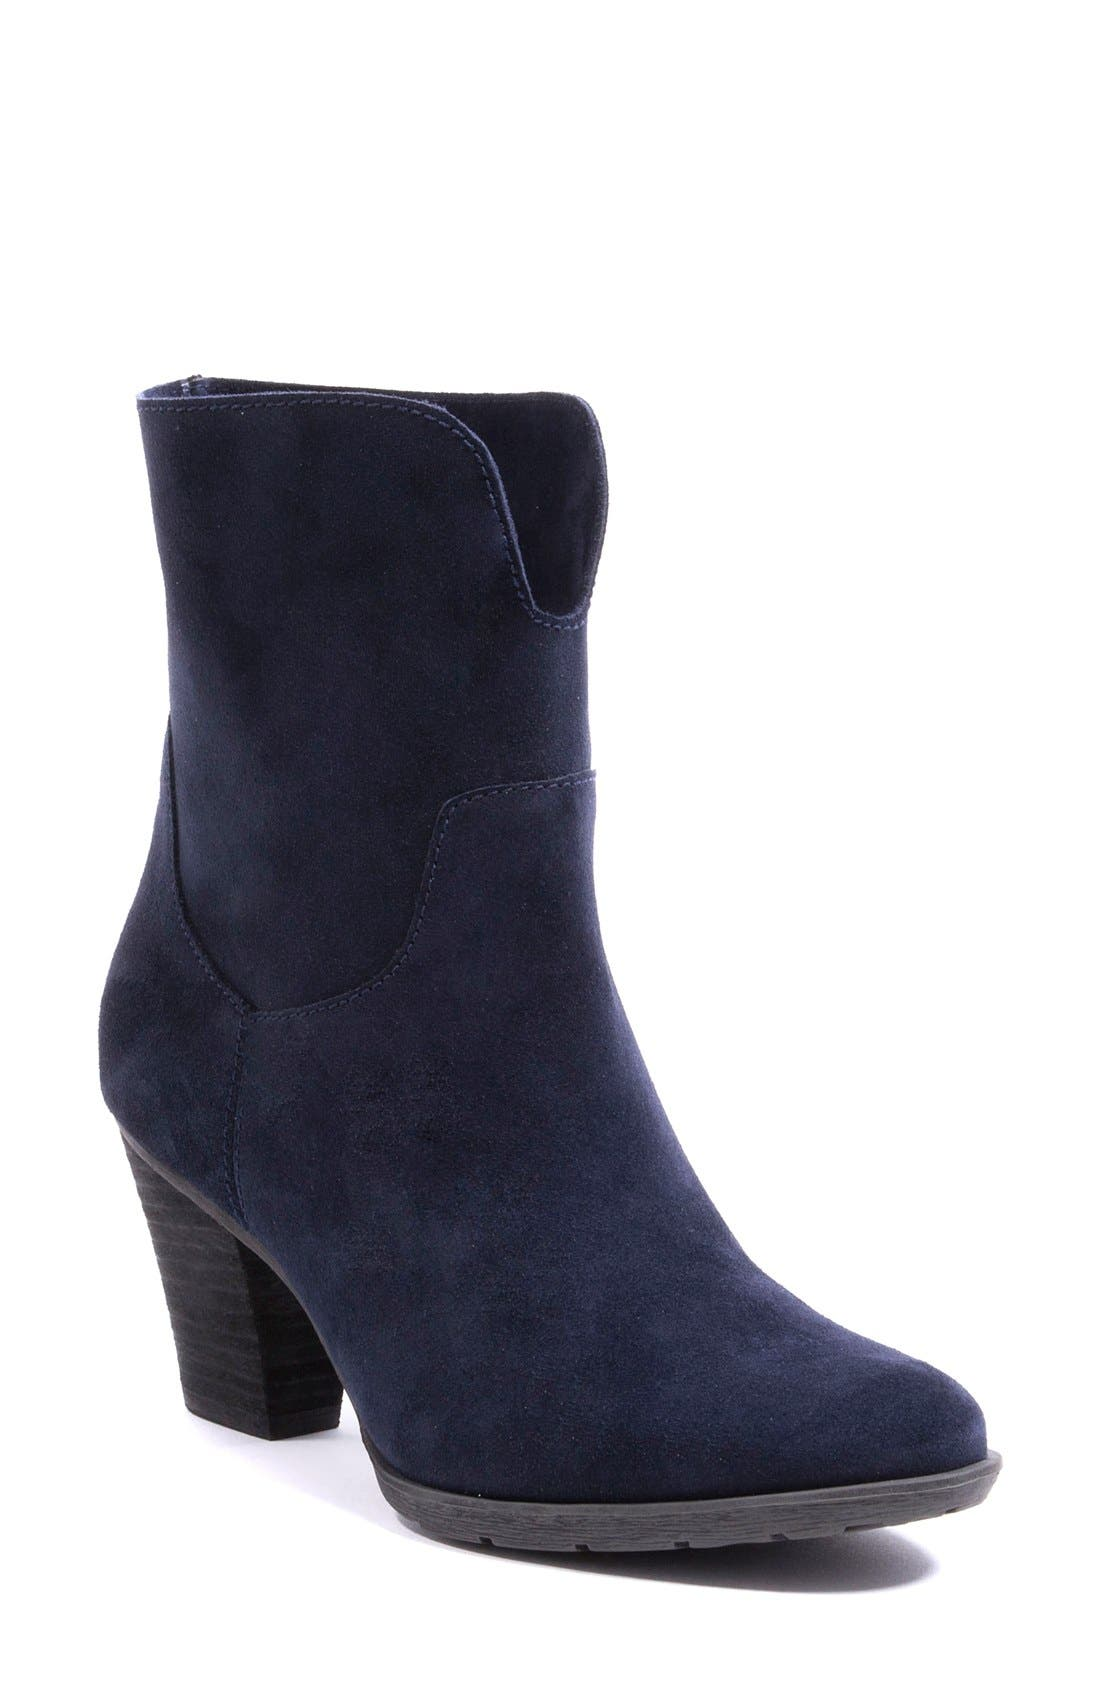 Fay Waterproof Ankle Boot,                             Alternate thumbnail 3, color,                             Navy Suede